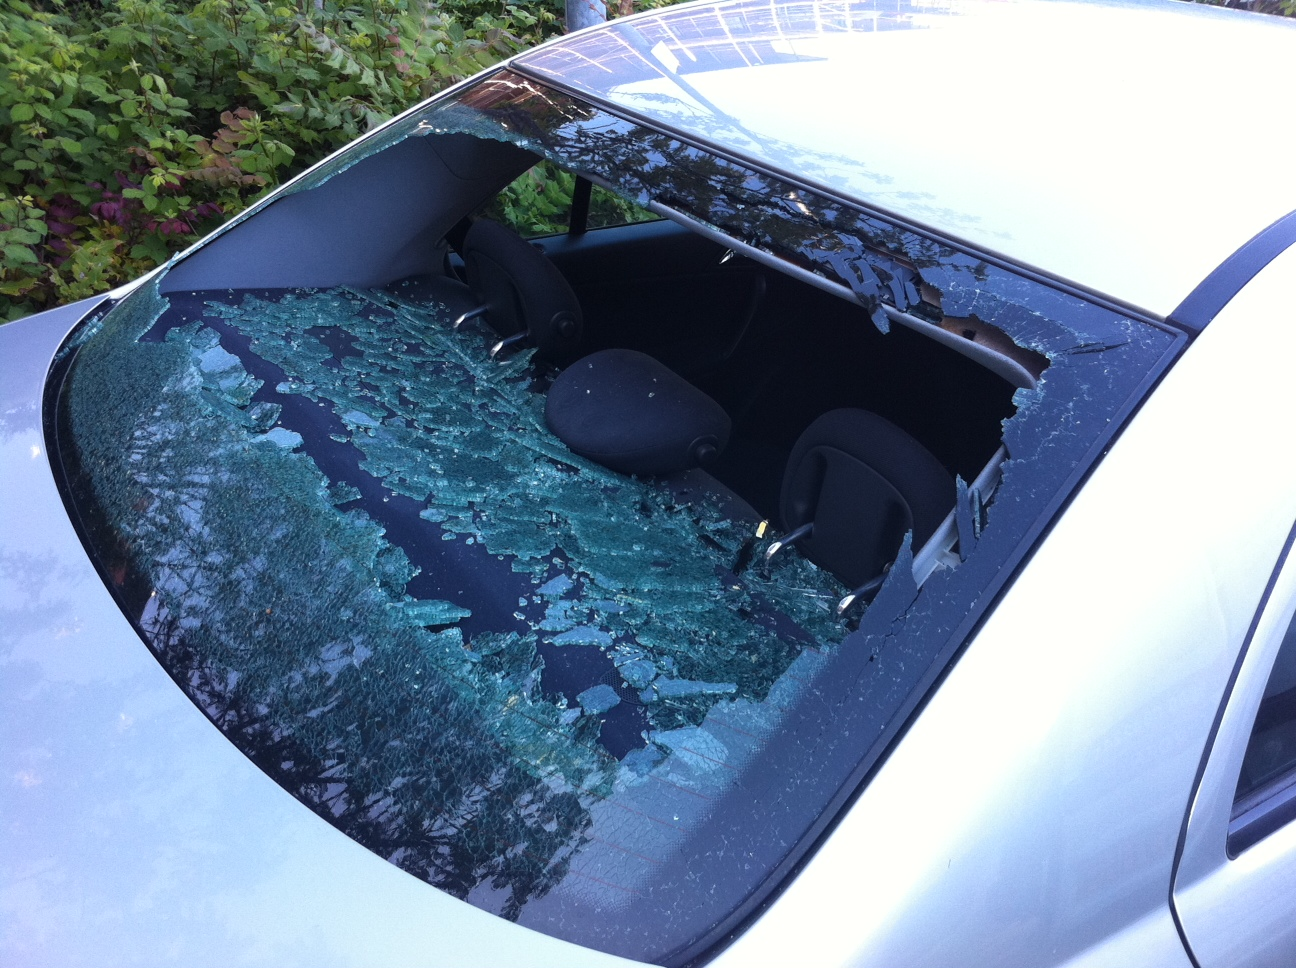 MAN VANDALIZES A WOMAN'S CAR AND BEATS HER UP MERCILESSLY FOR HITTING HIM WITH HER WING MIRROR